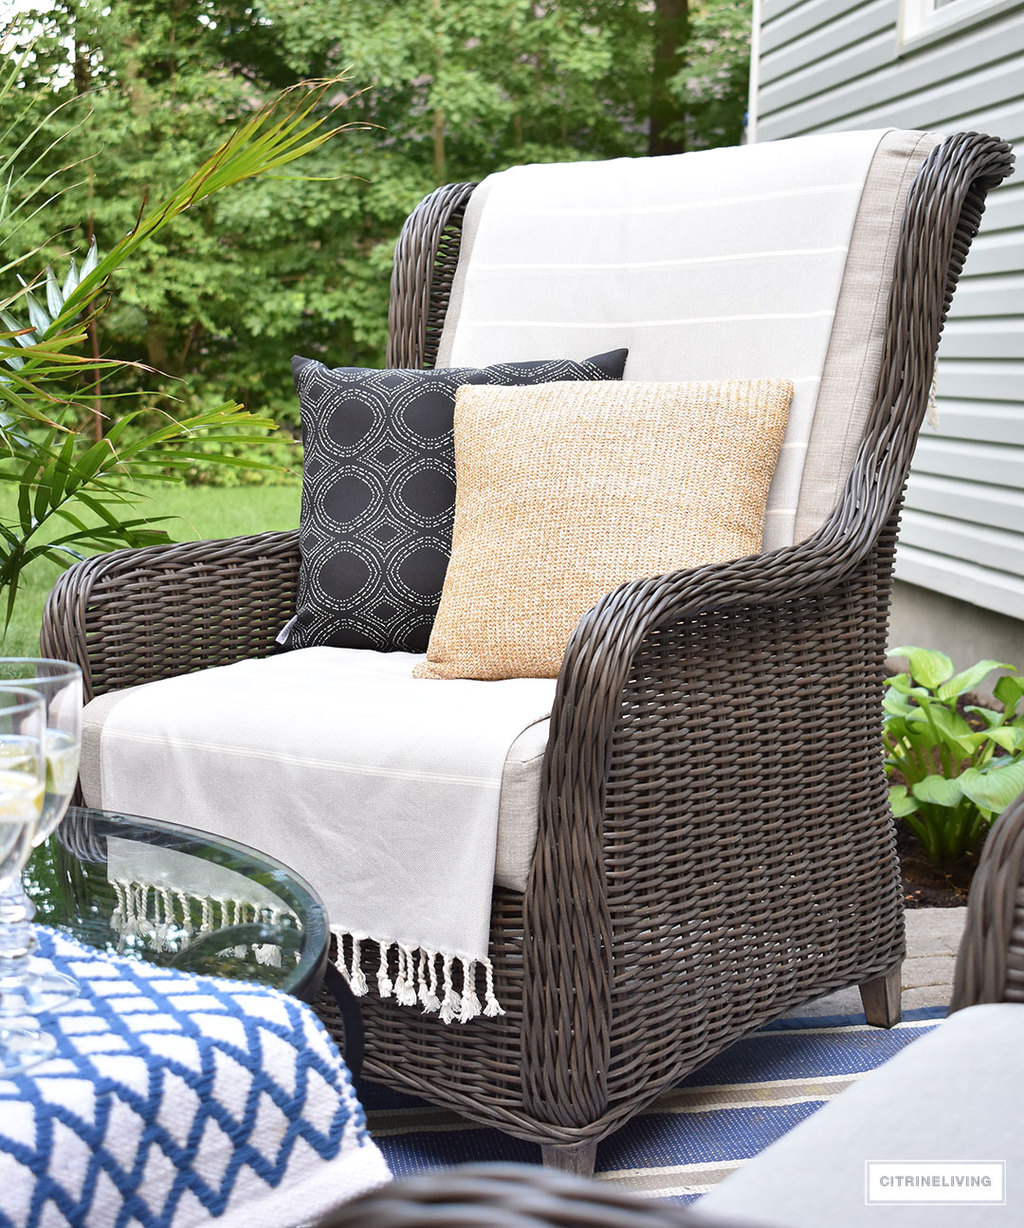 ... Outdoor Fireplace Beautiful, Resin Wicker Wingback Chairs Are The  Perfect Spot To Relax And Enjoy Coffee Or